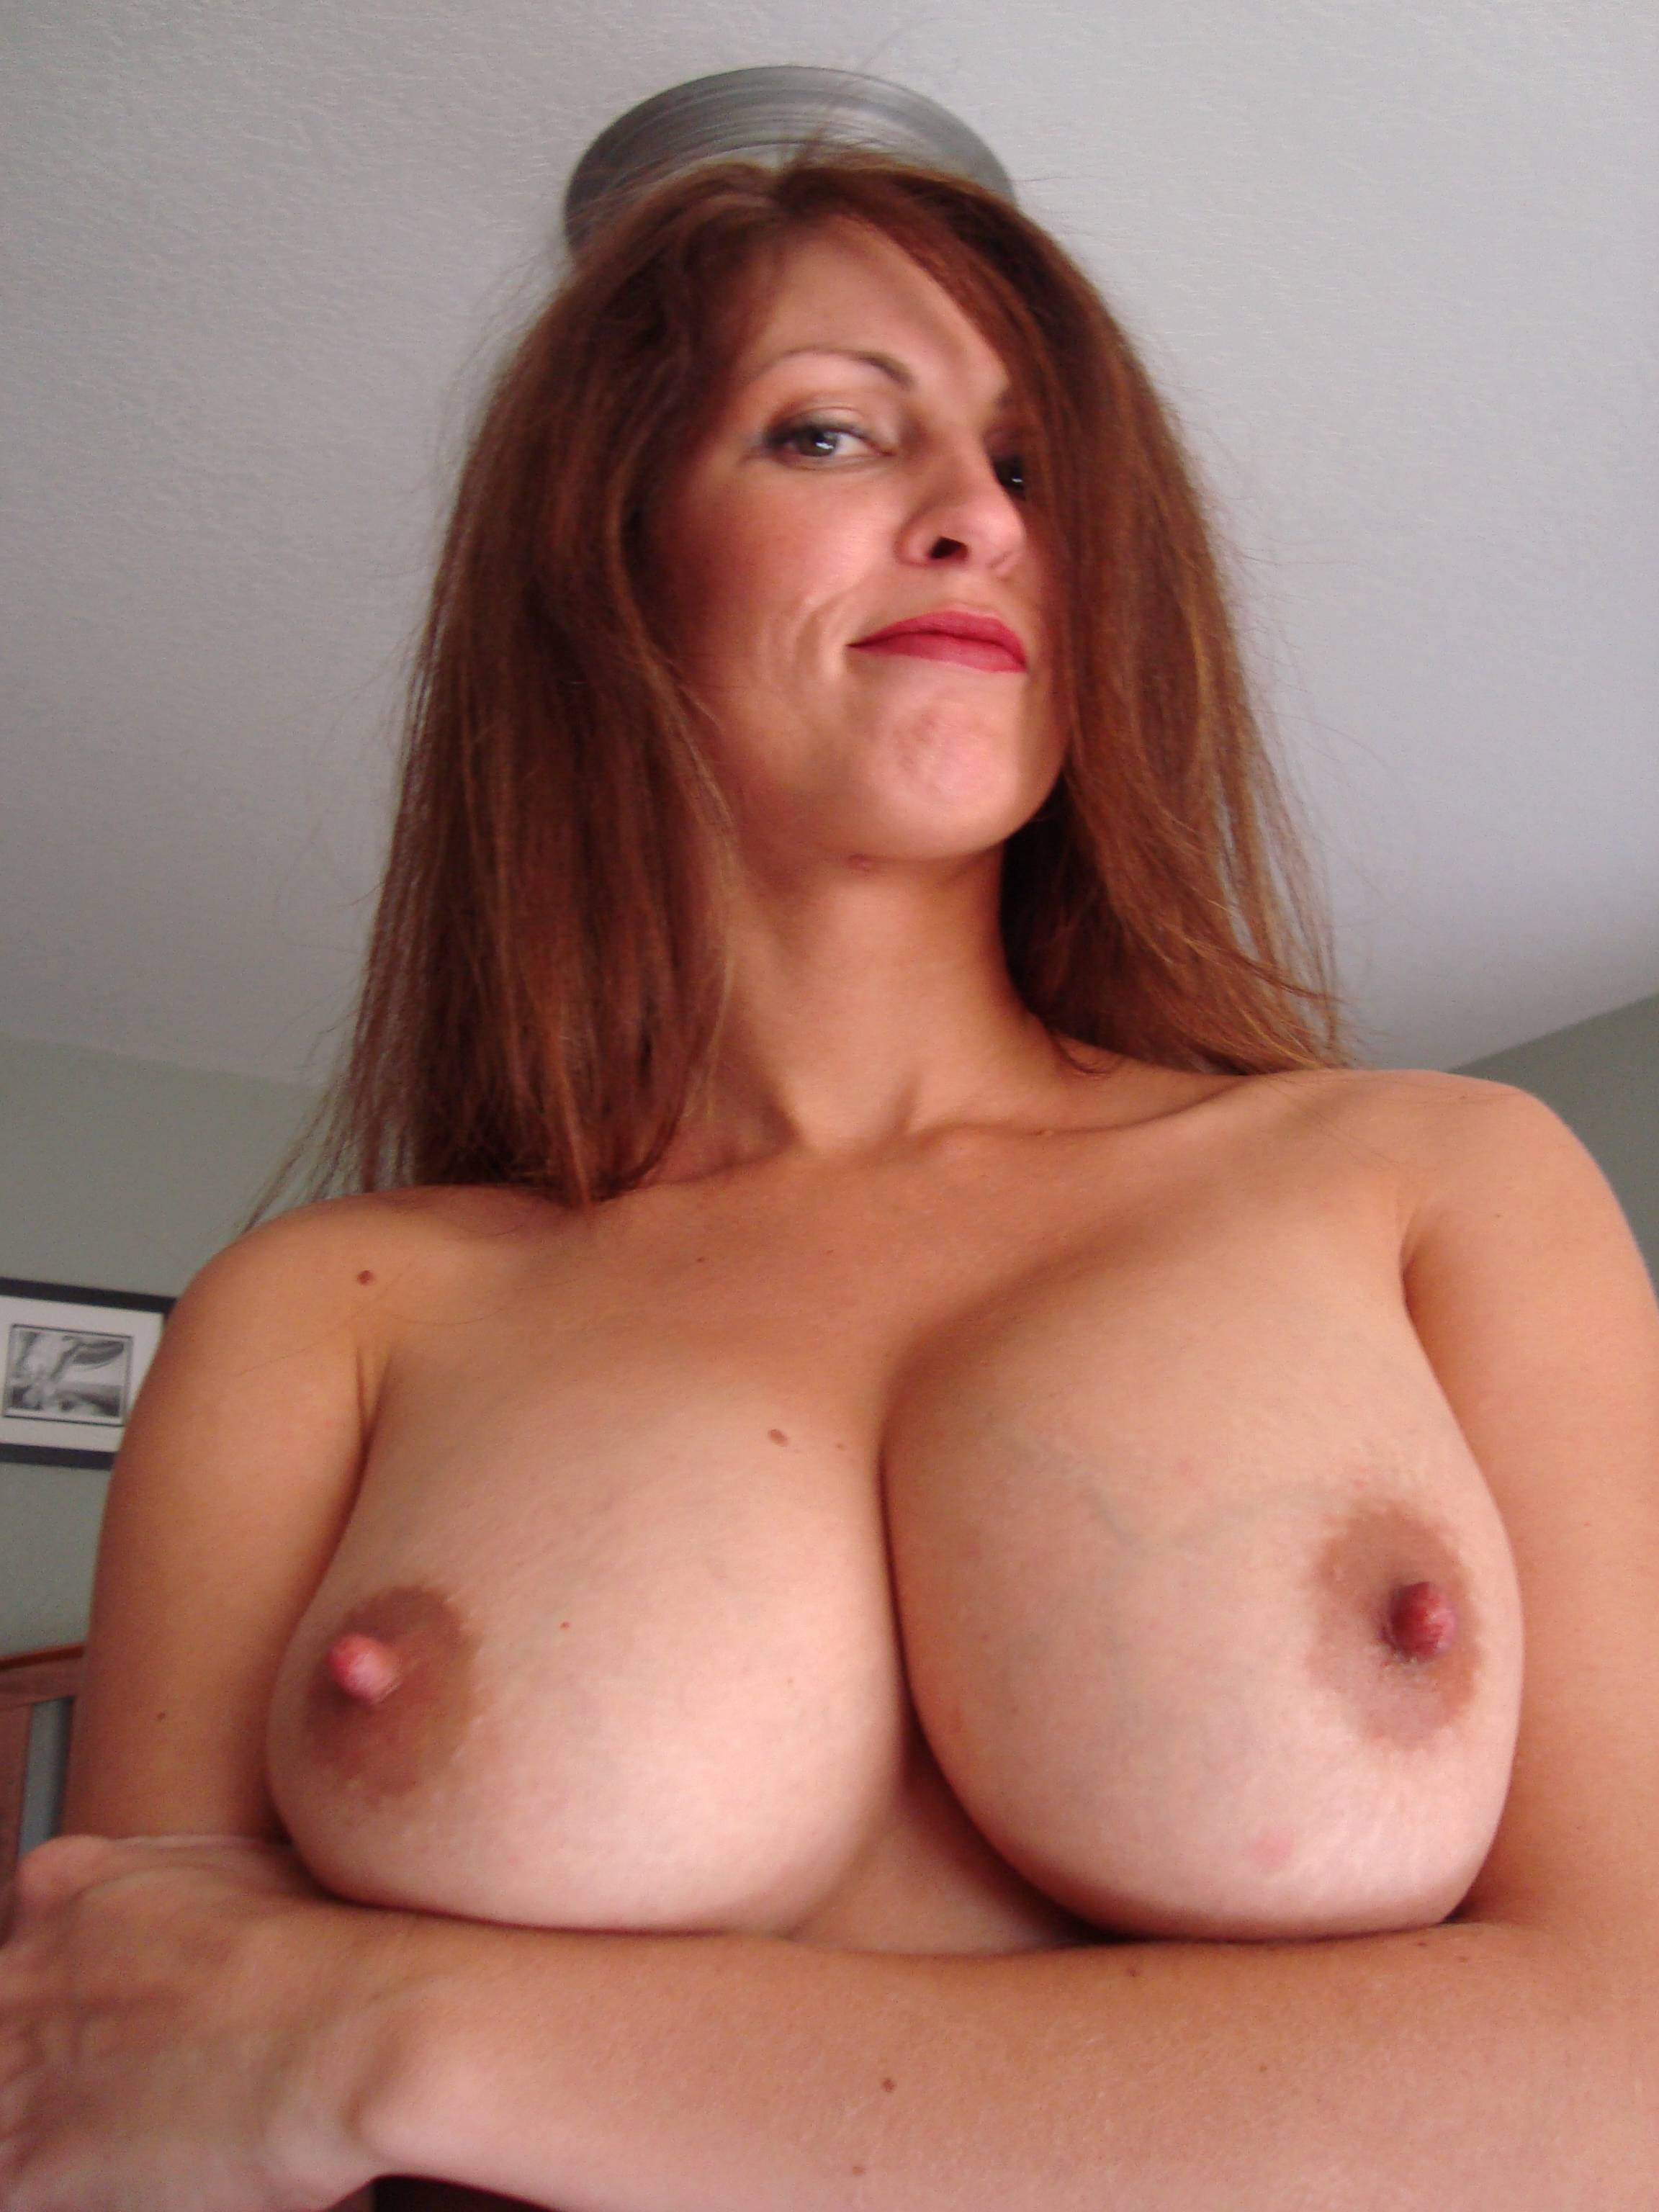 Teen Big Natural Boobs Fucked